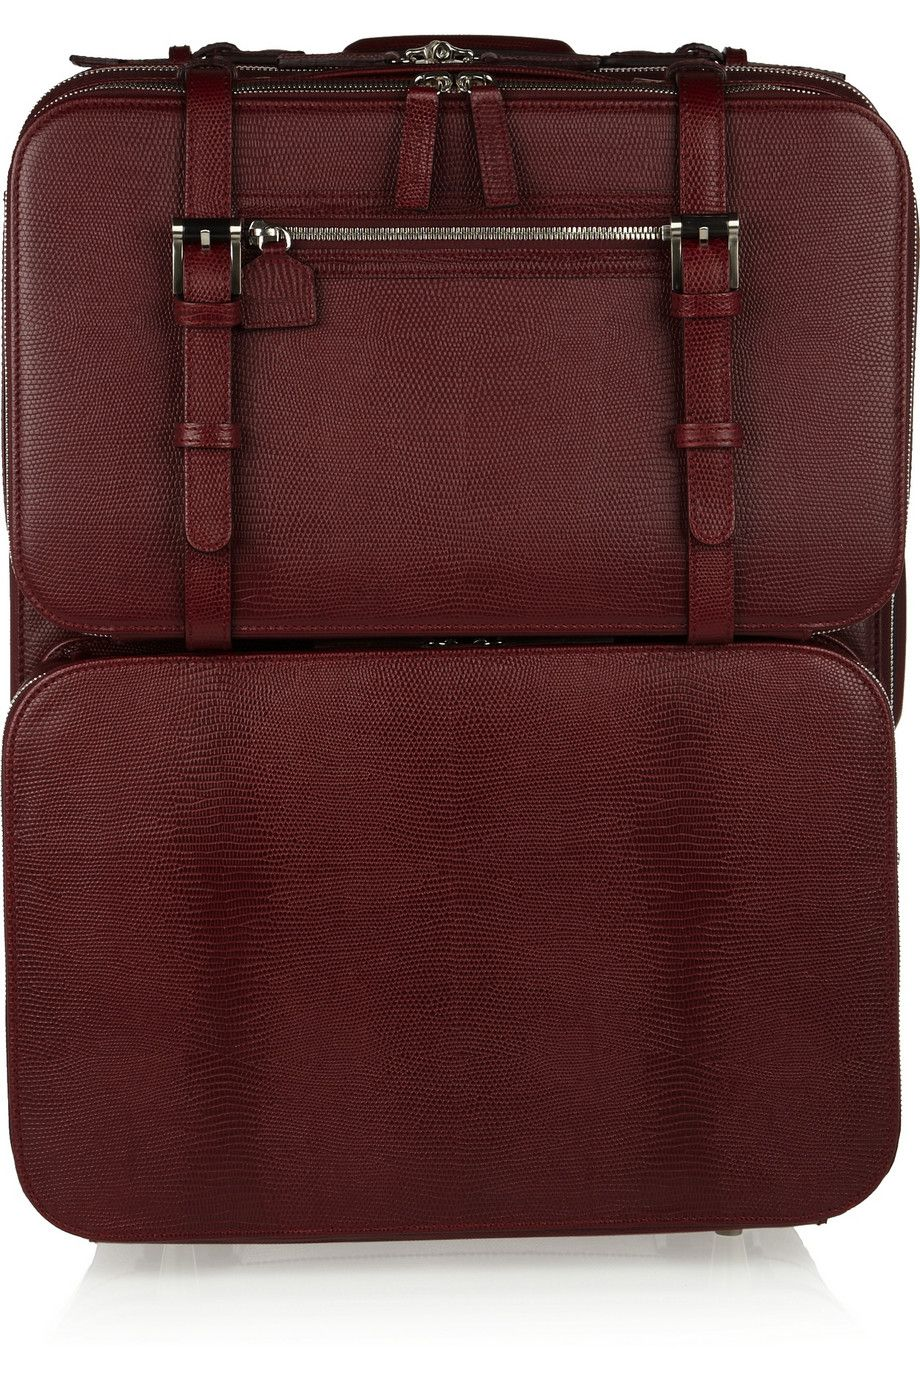 Moncrief Lizardembossed leather detachablecase travel